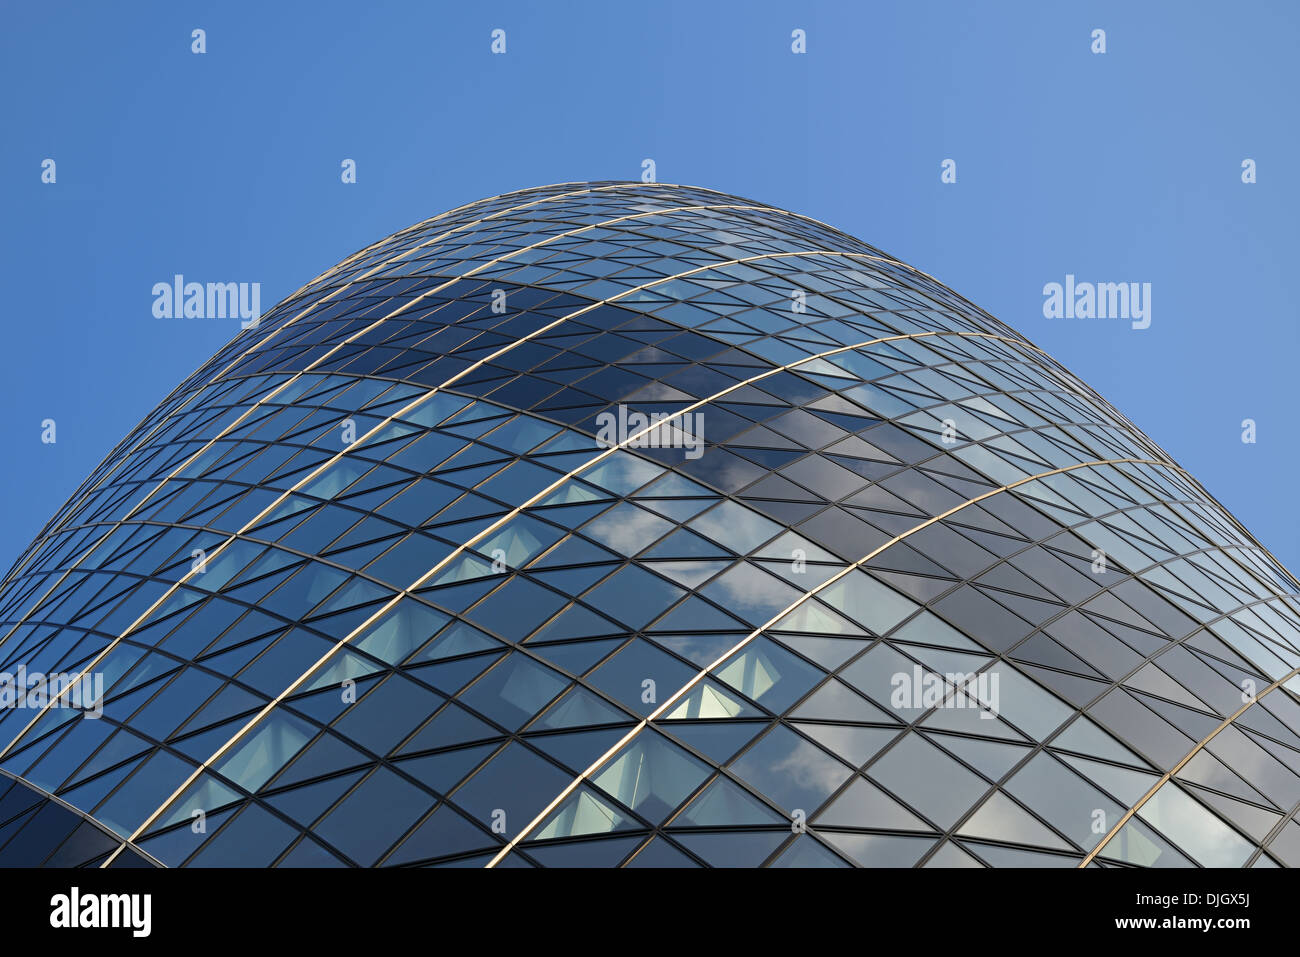 The Gherkin Building, 30 St Mary Axe, London, UK. - Stock Image